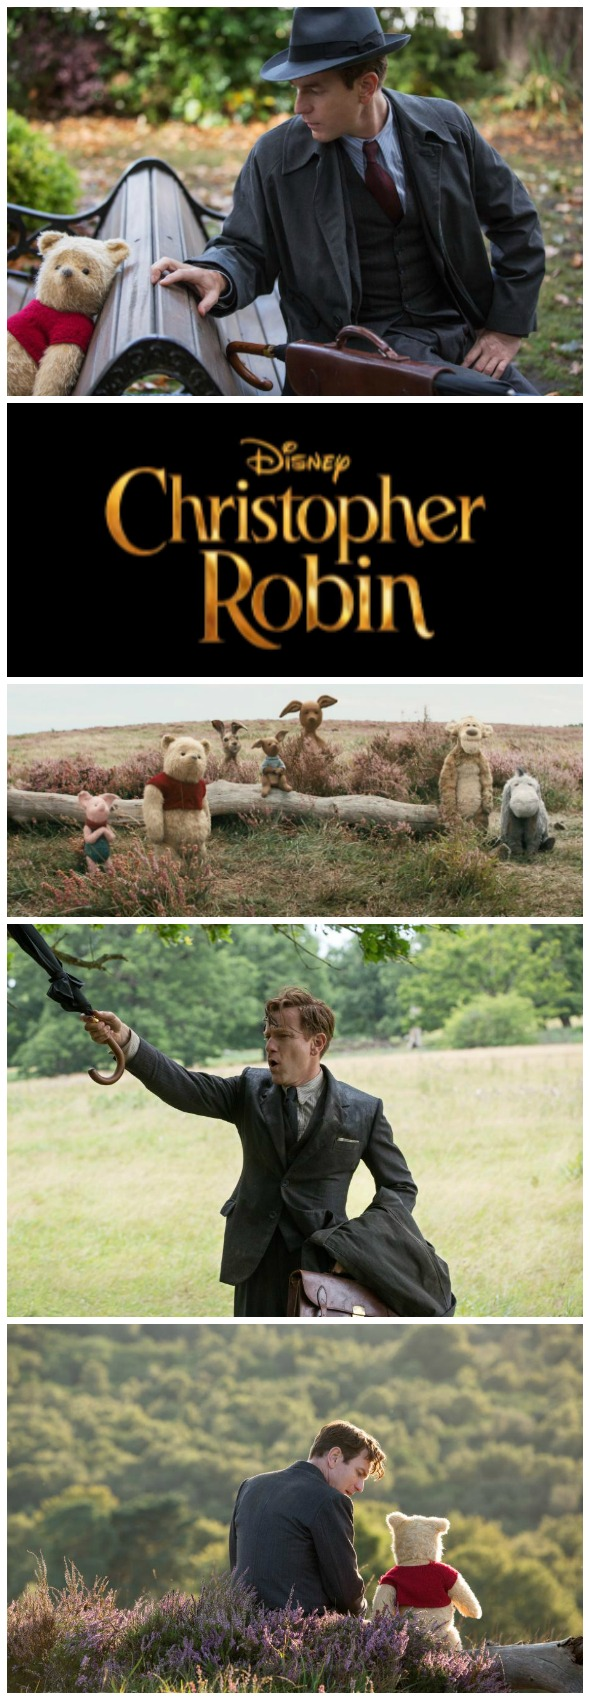 Christopher Robin #christopherrobin #disneypartner #disney #movie #theater #winniethepooh #tigger #eeyore #piglet #hundredacrewoods #disneymovie